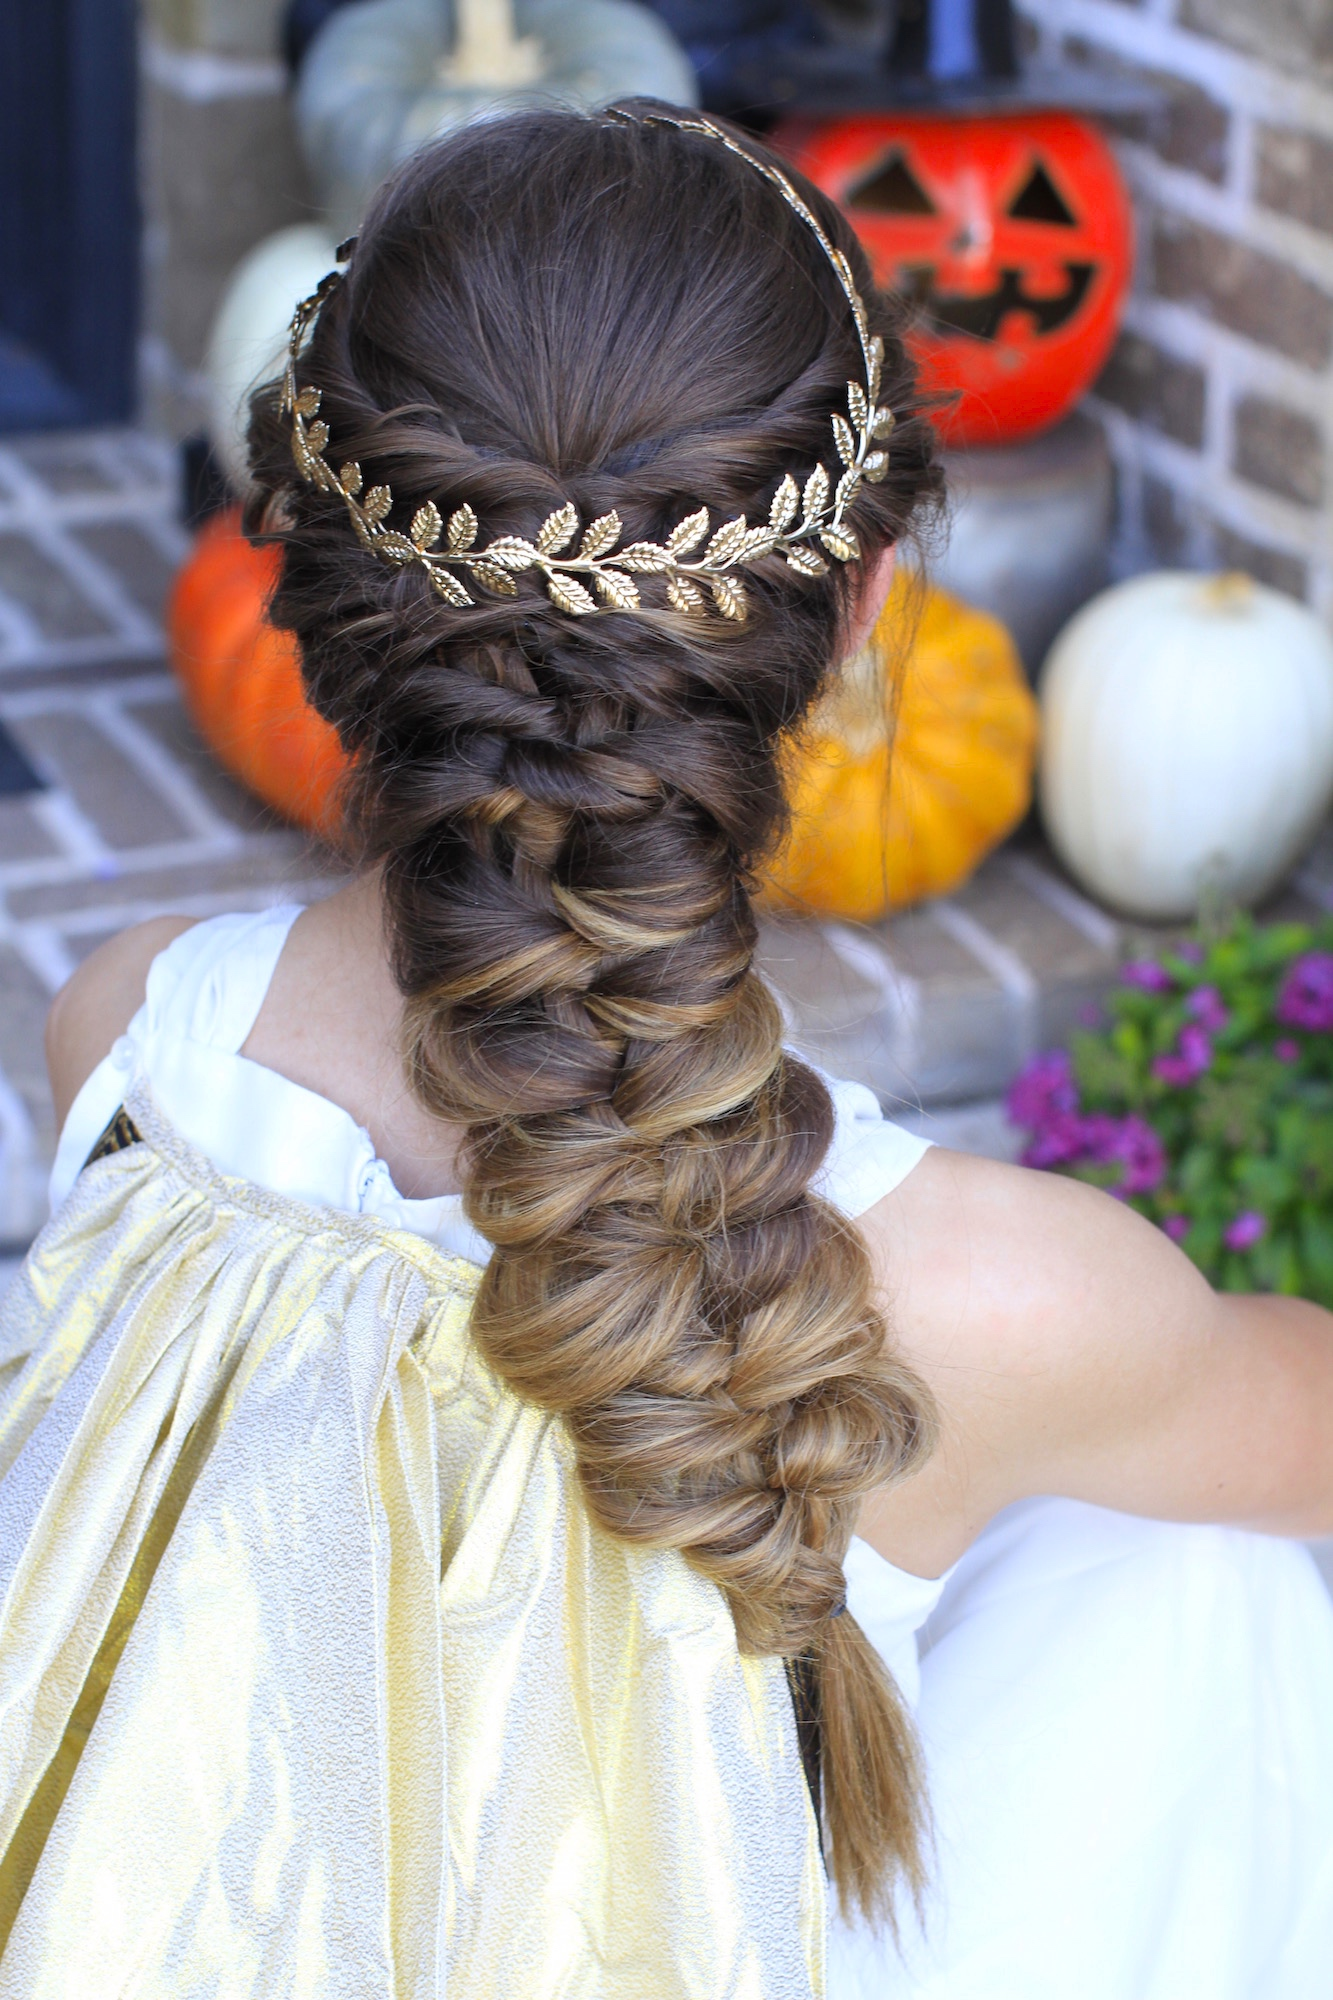 DIY Halloween hair idea - Greek Goddes braid via Cute Girl hairstyles